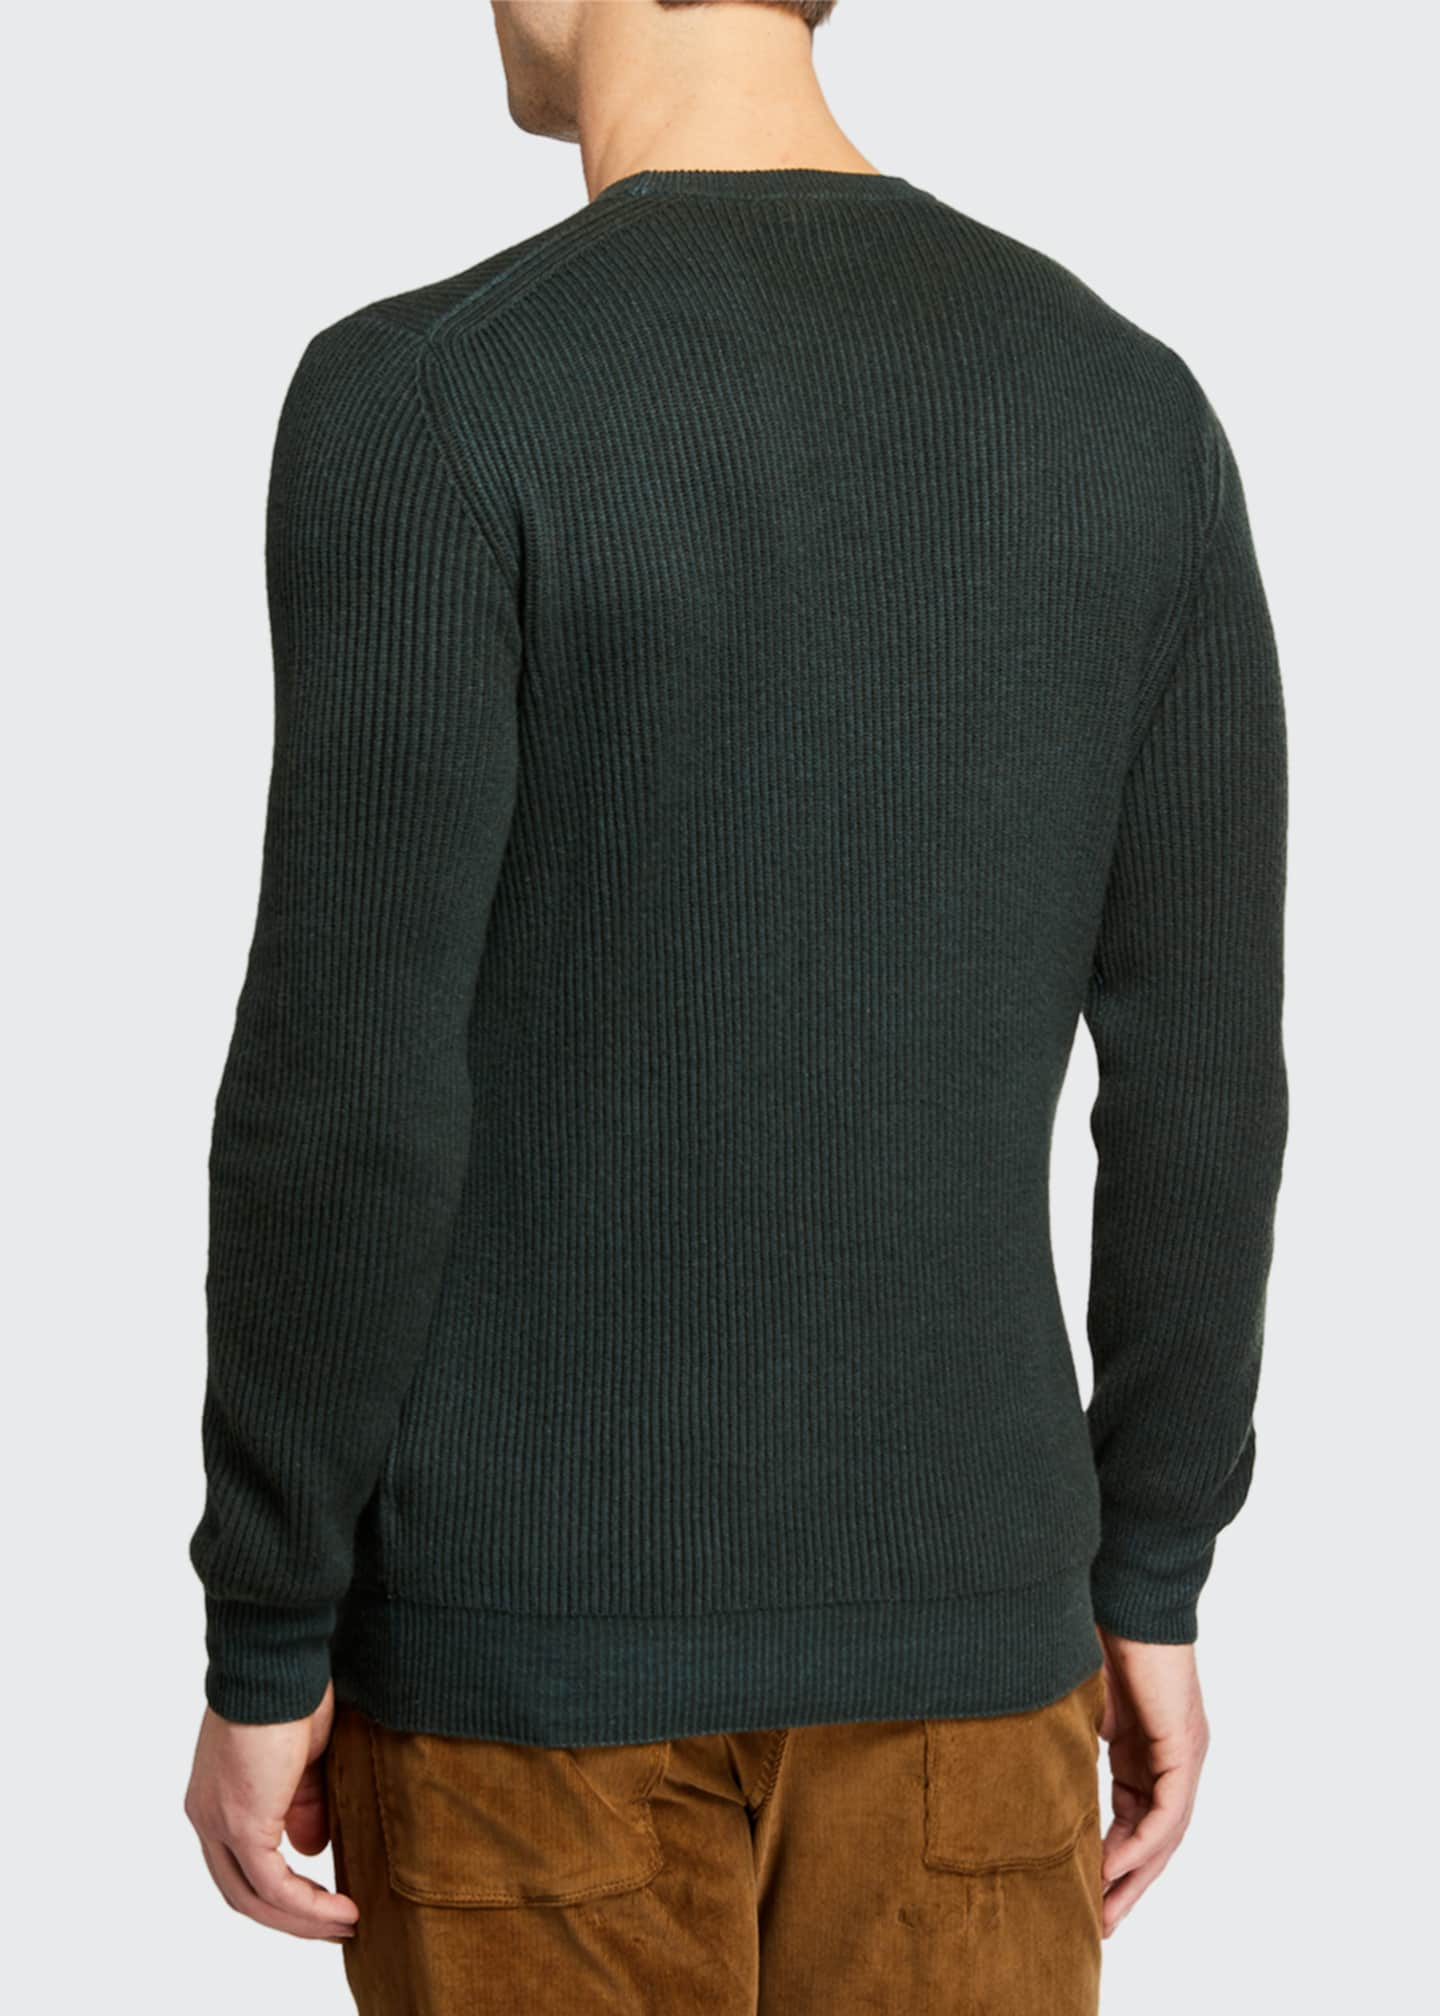 Image 2 of 2: Men's Girocollo Cash York Ribbed Sweater